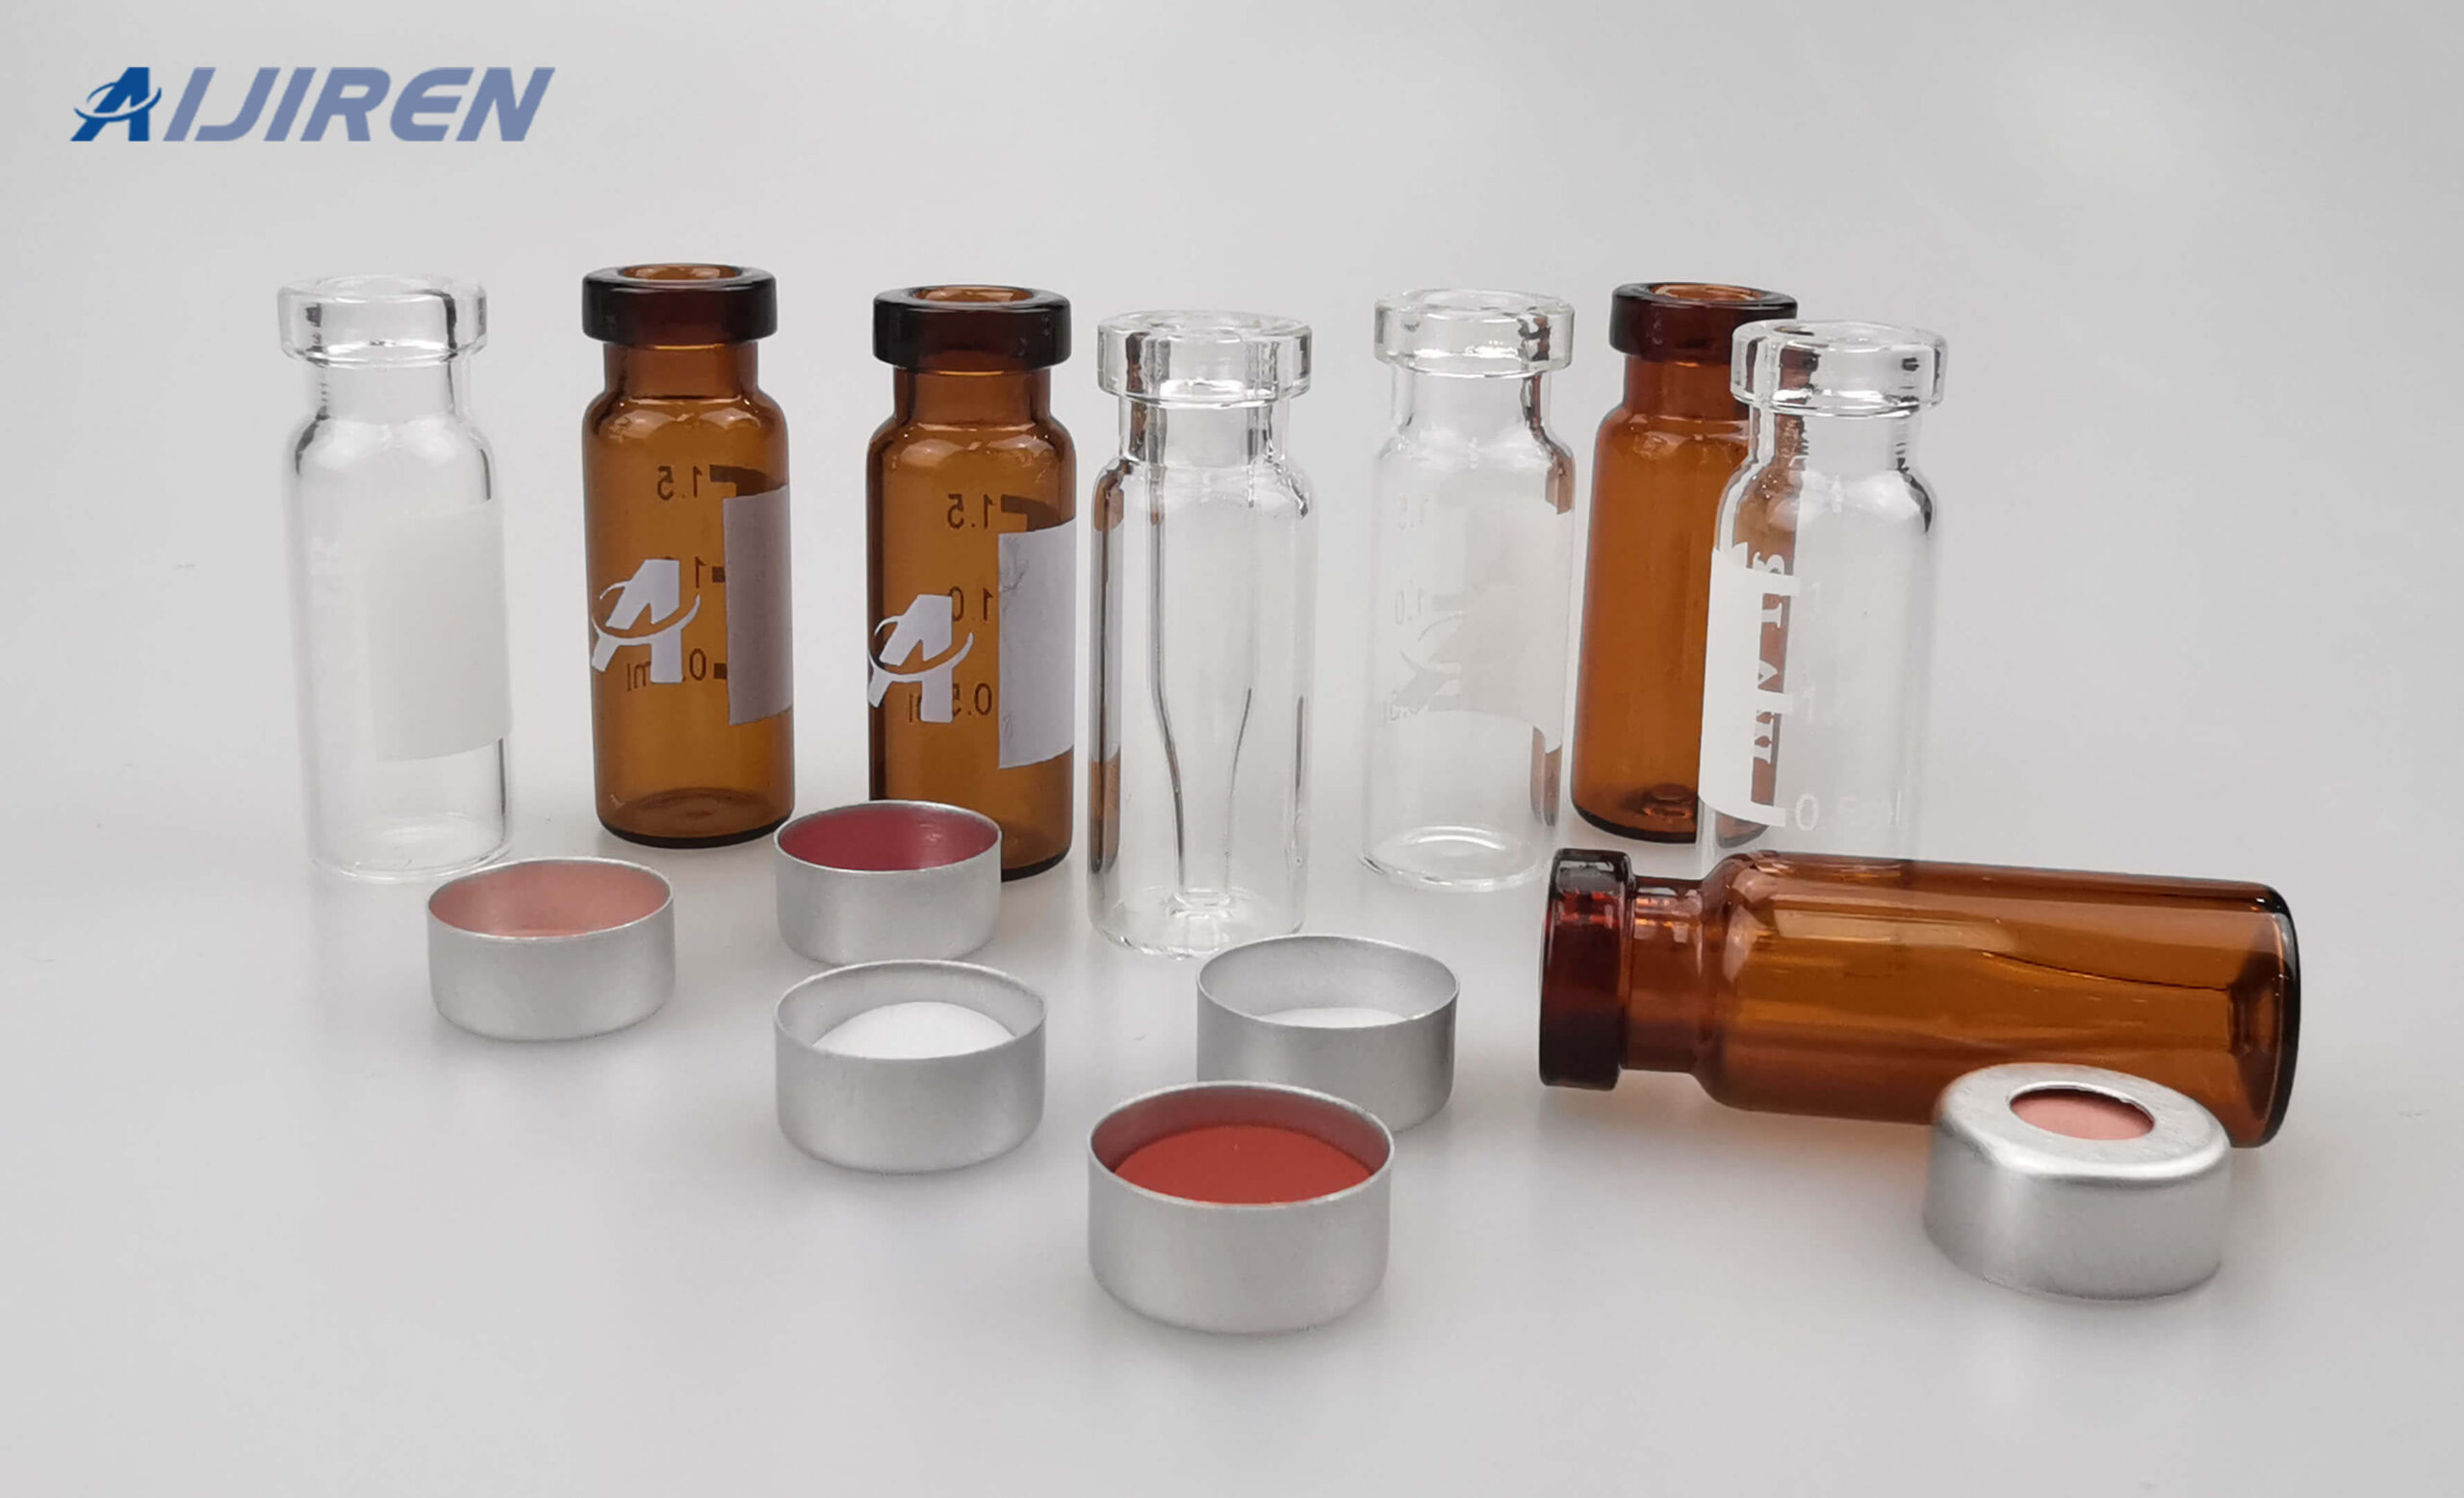 20ml headspace vial11mm Crimp Vial with Aluminum Caps for Sale